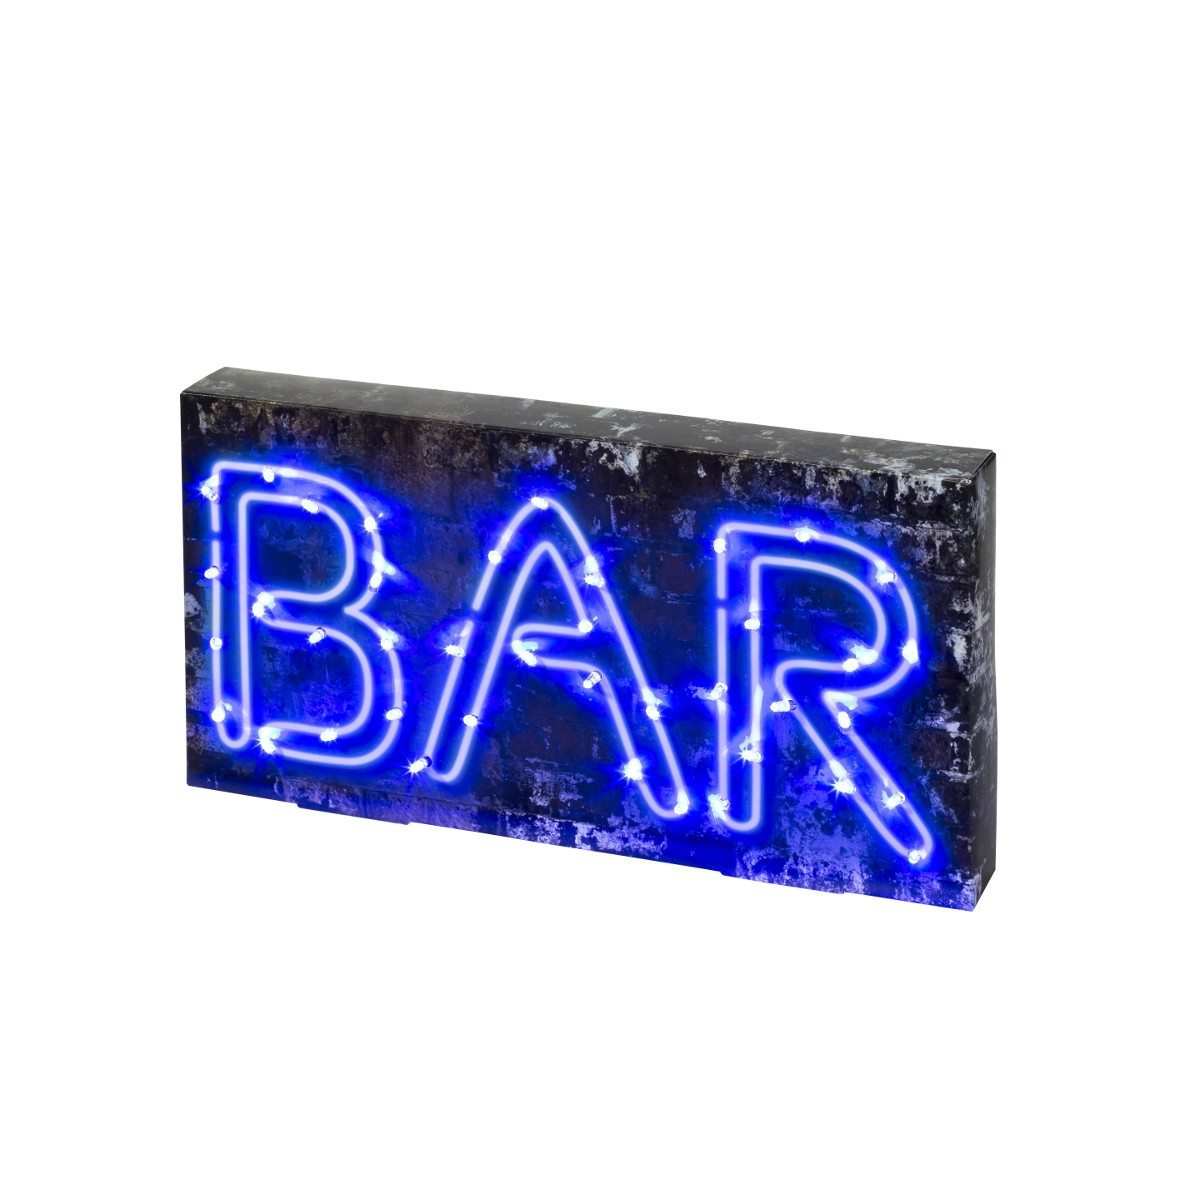 panneau lumineux led bar. Black Bedroom Furniture Sets. Home Design Ideas